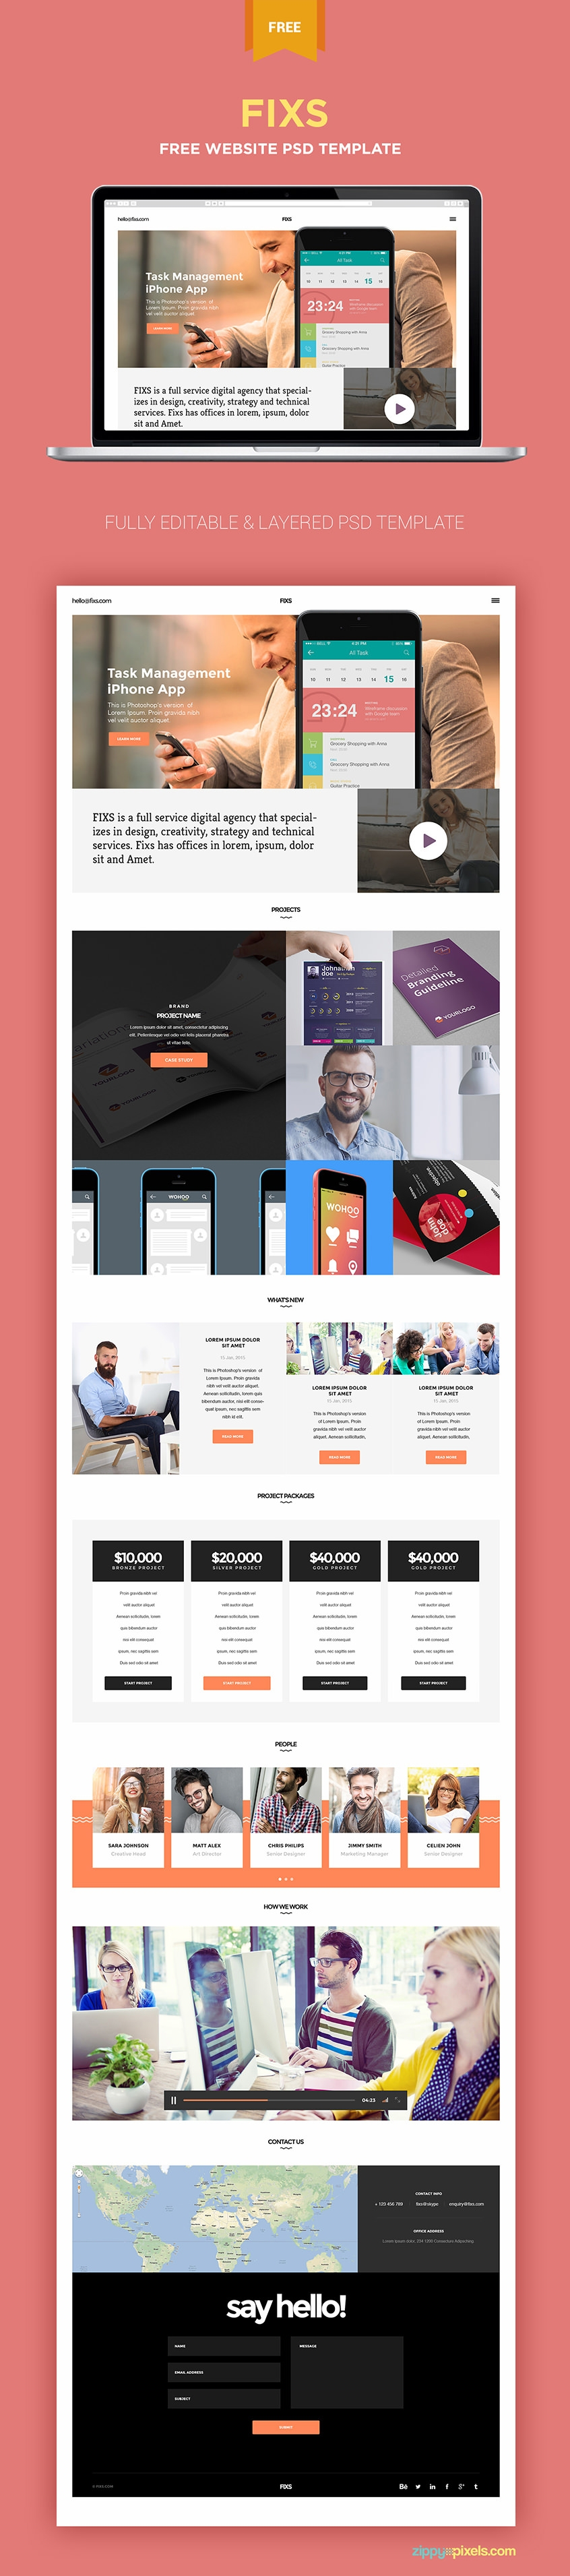 26+ Free One Page Psd Web Template Designs | Free & Premium Creatives